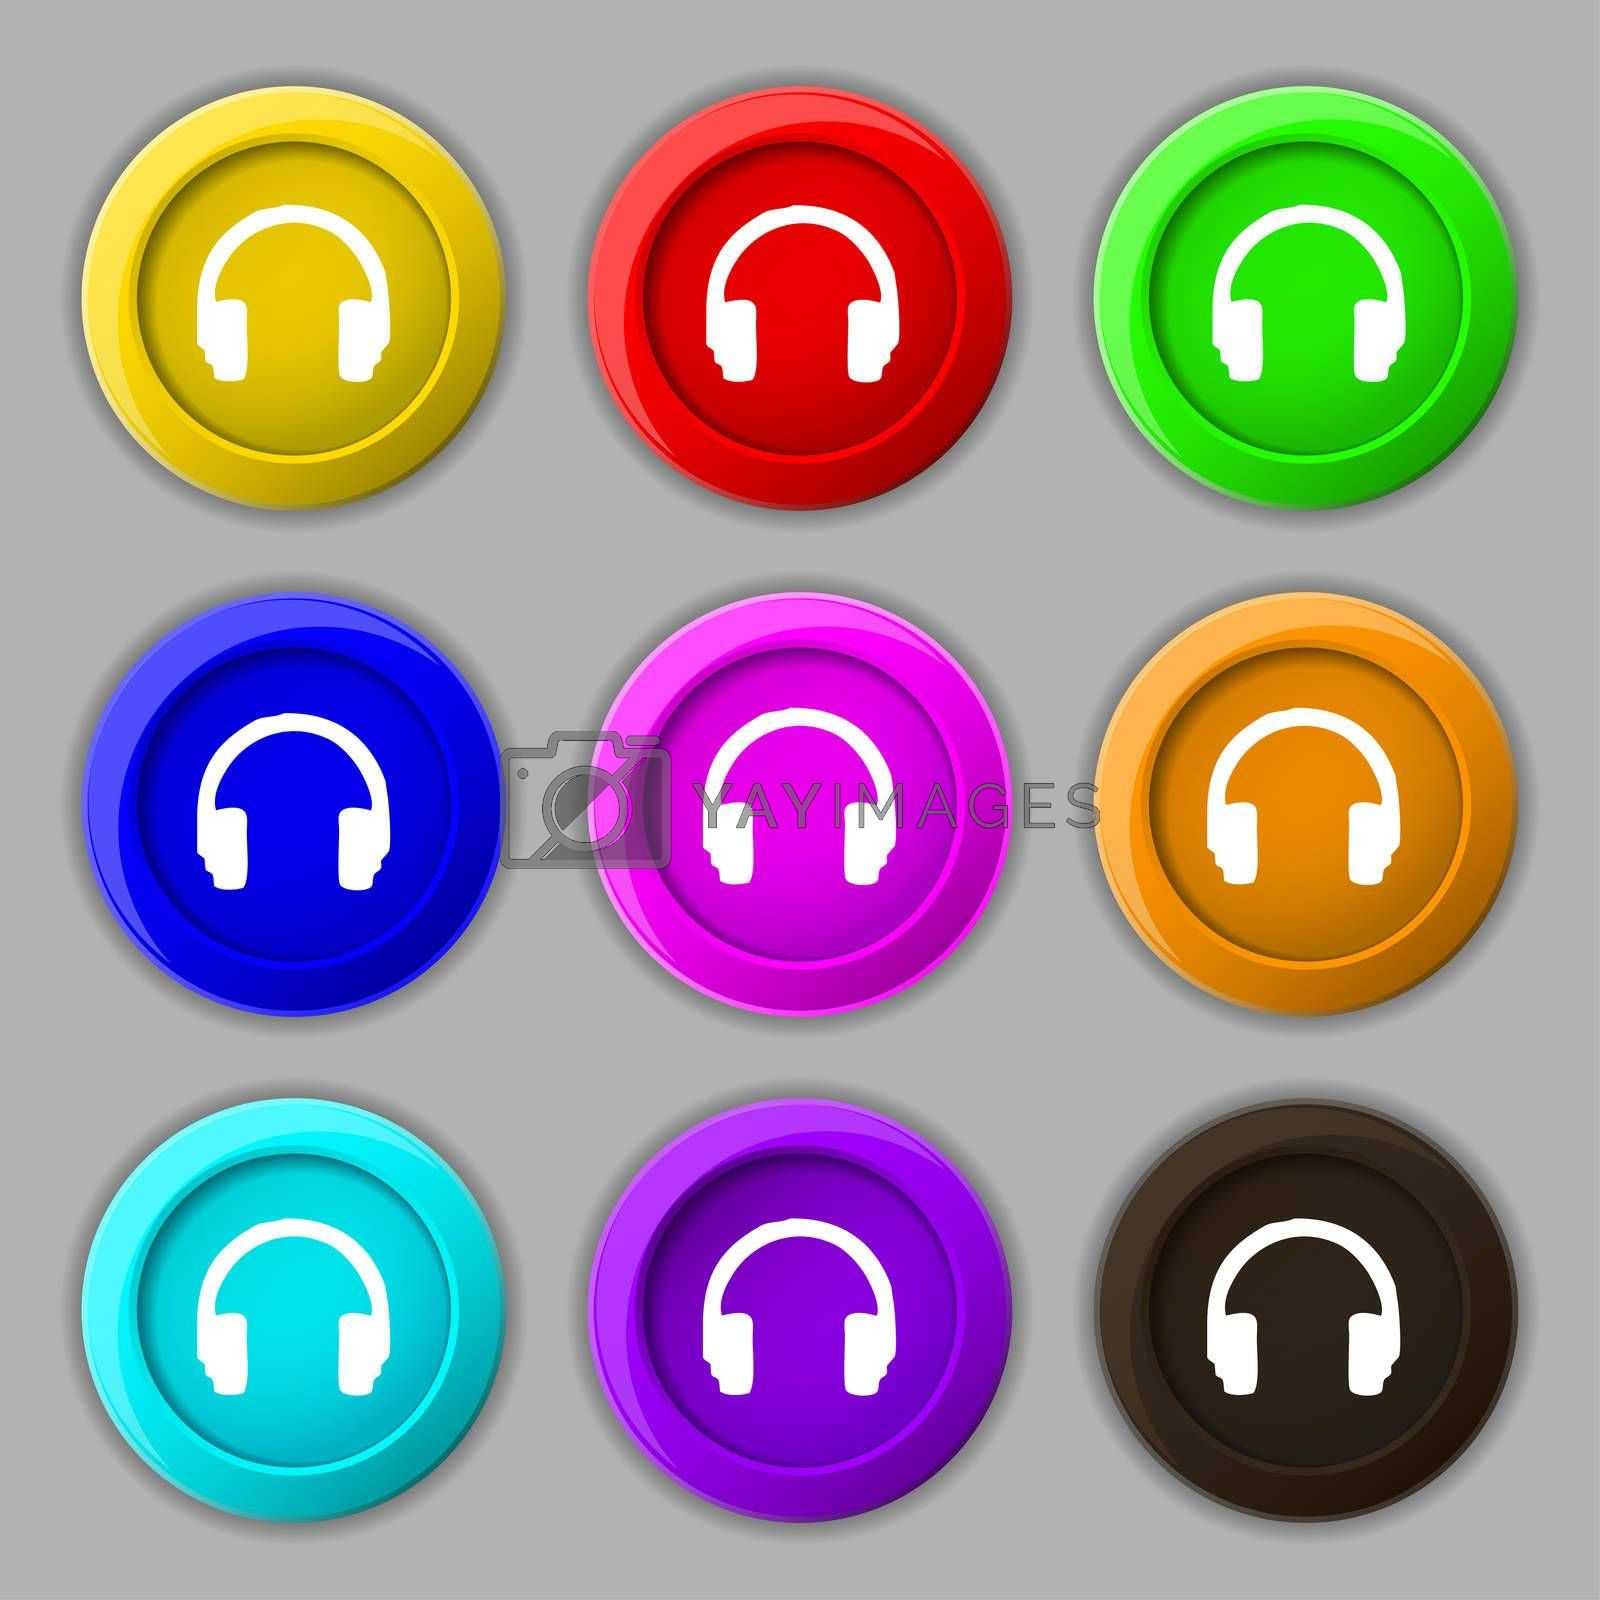 headsets icon sign. symbol on nine round colourful buttons.  by Serhii Lohvyniuk